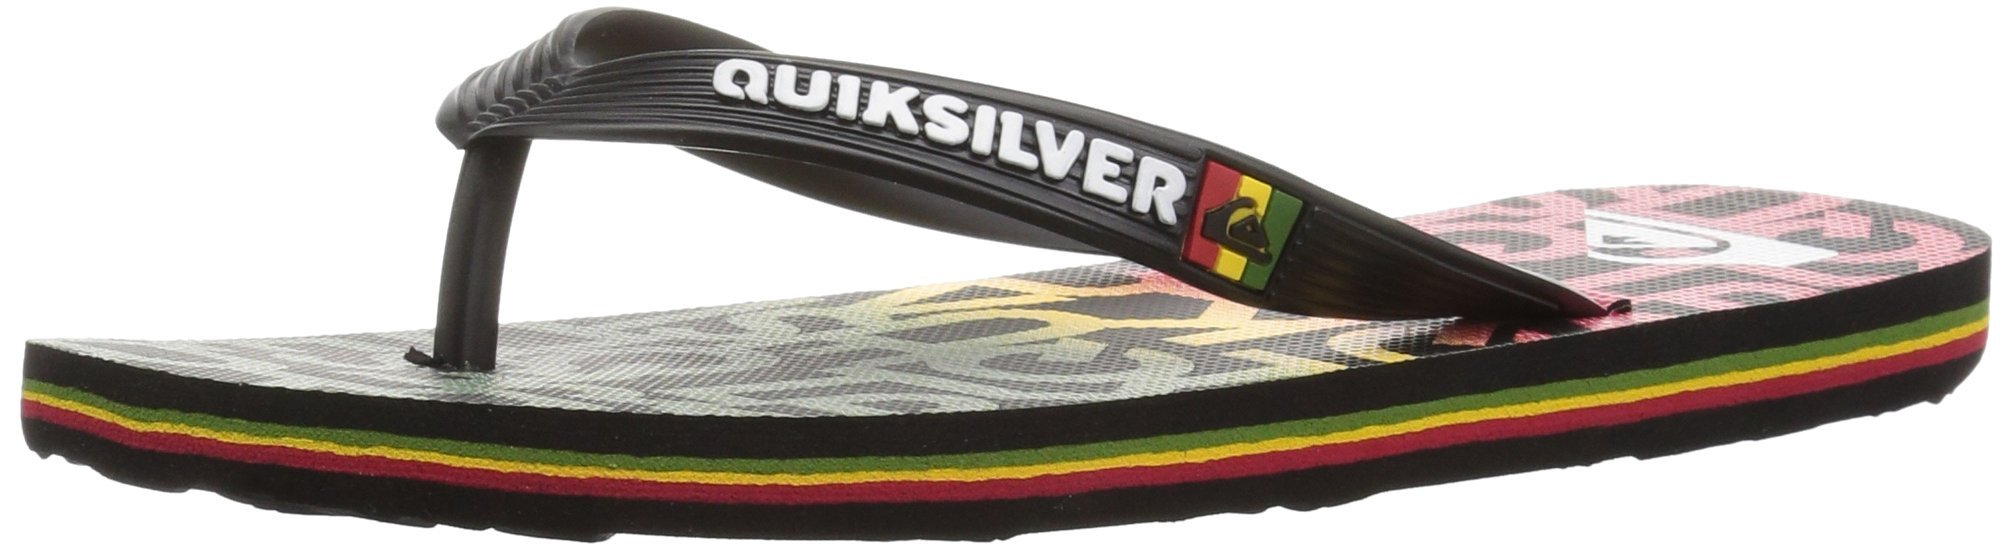 Quiksilver Kids' Molokai Random Youth Sandal, Black/Red/Green, 11 M US Little Kid